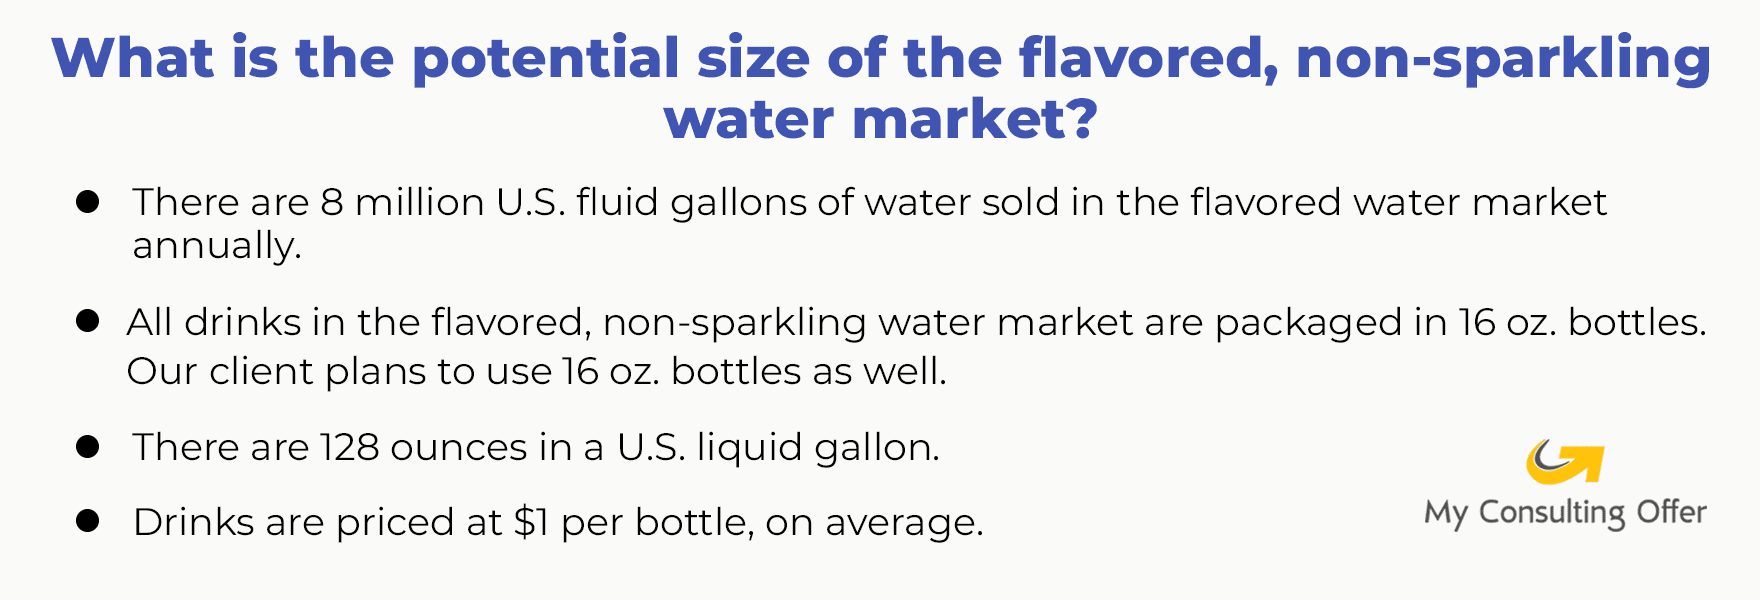 What is the potential size of the flavored, non-sparkling water market?